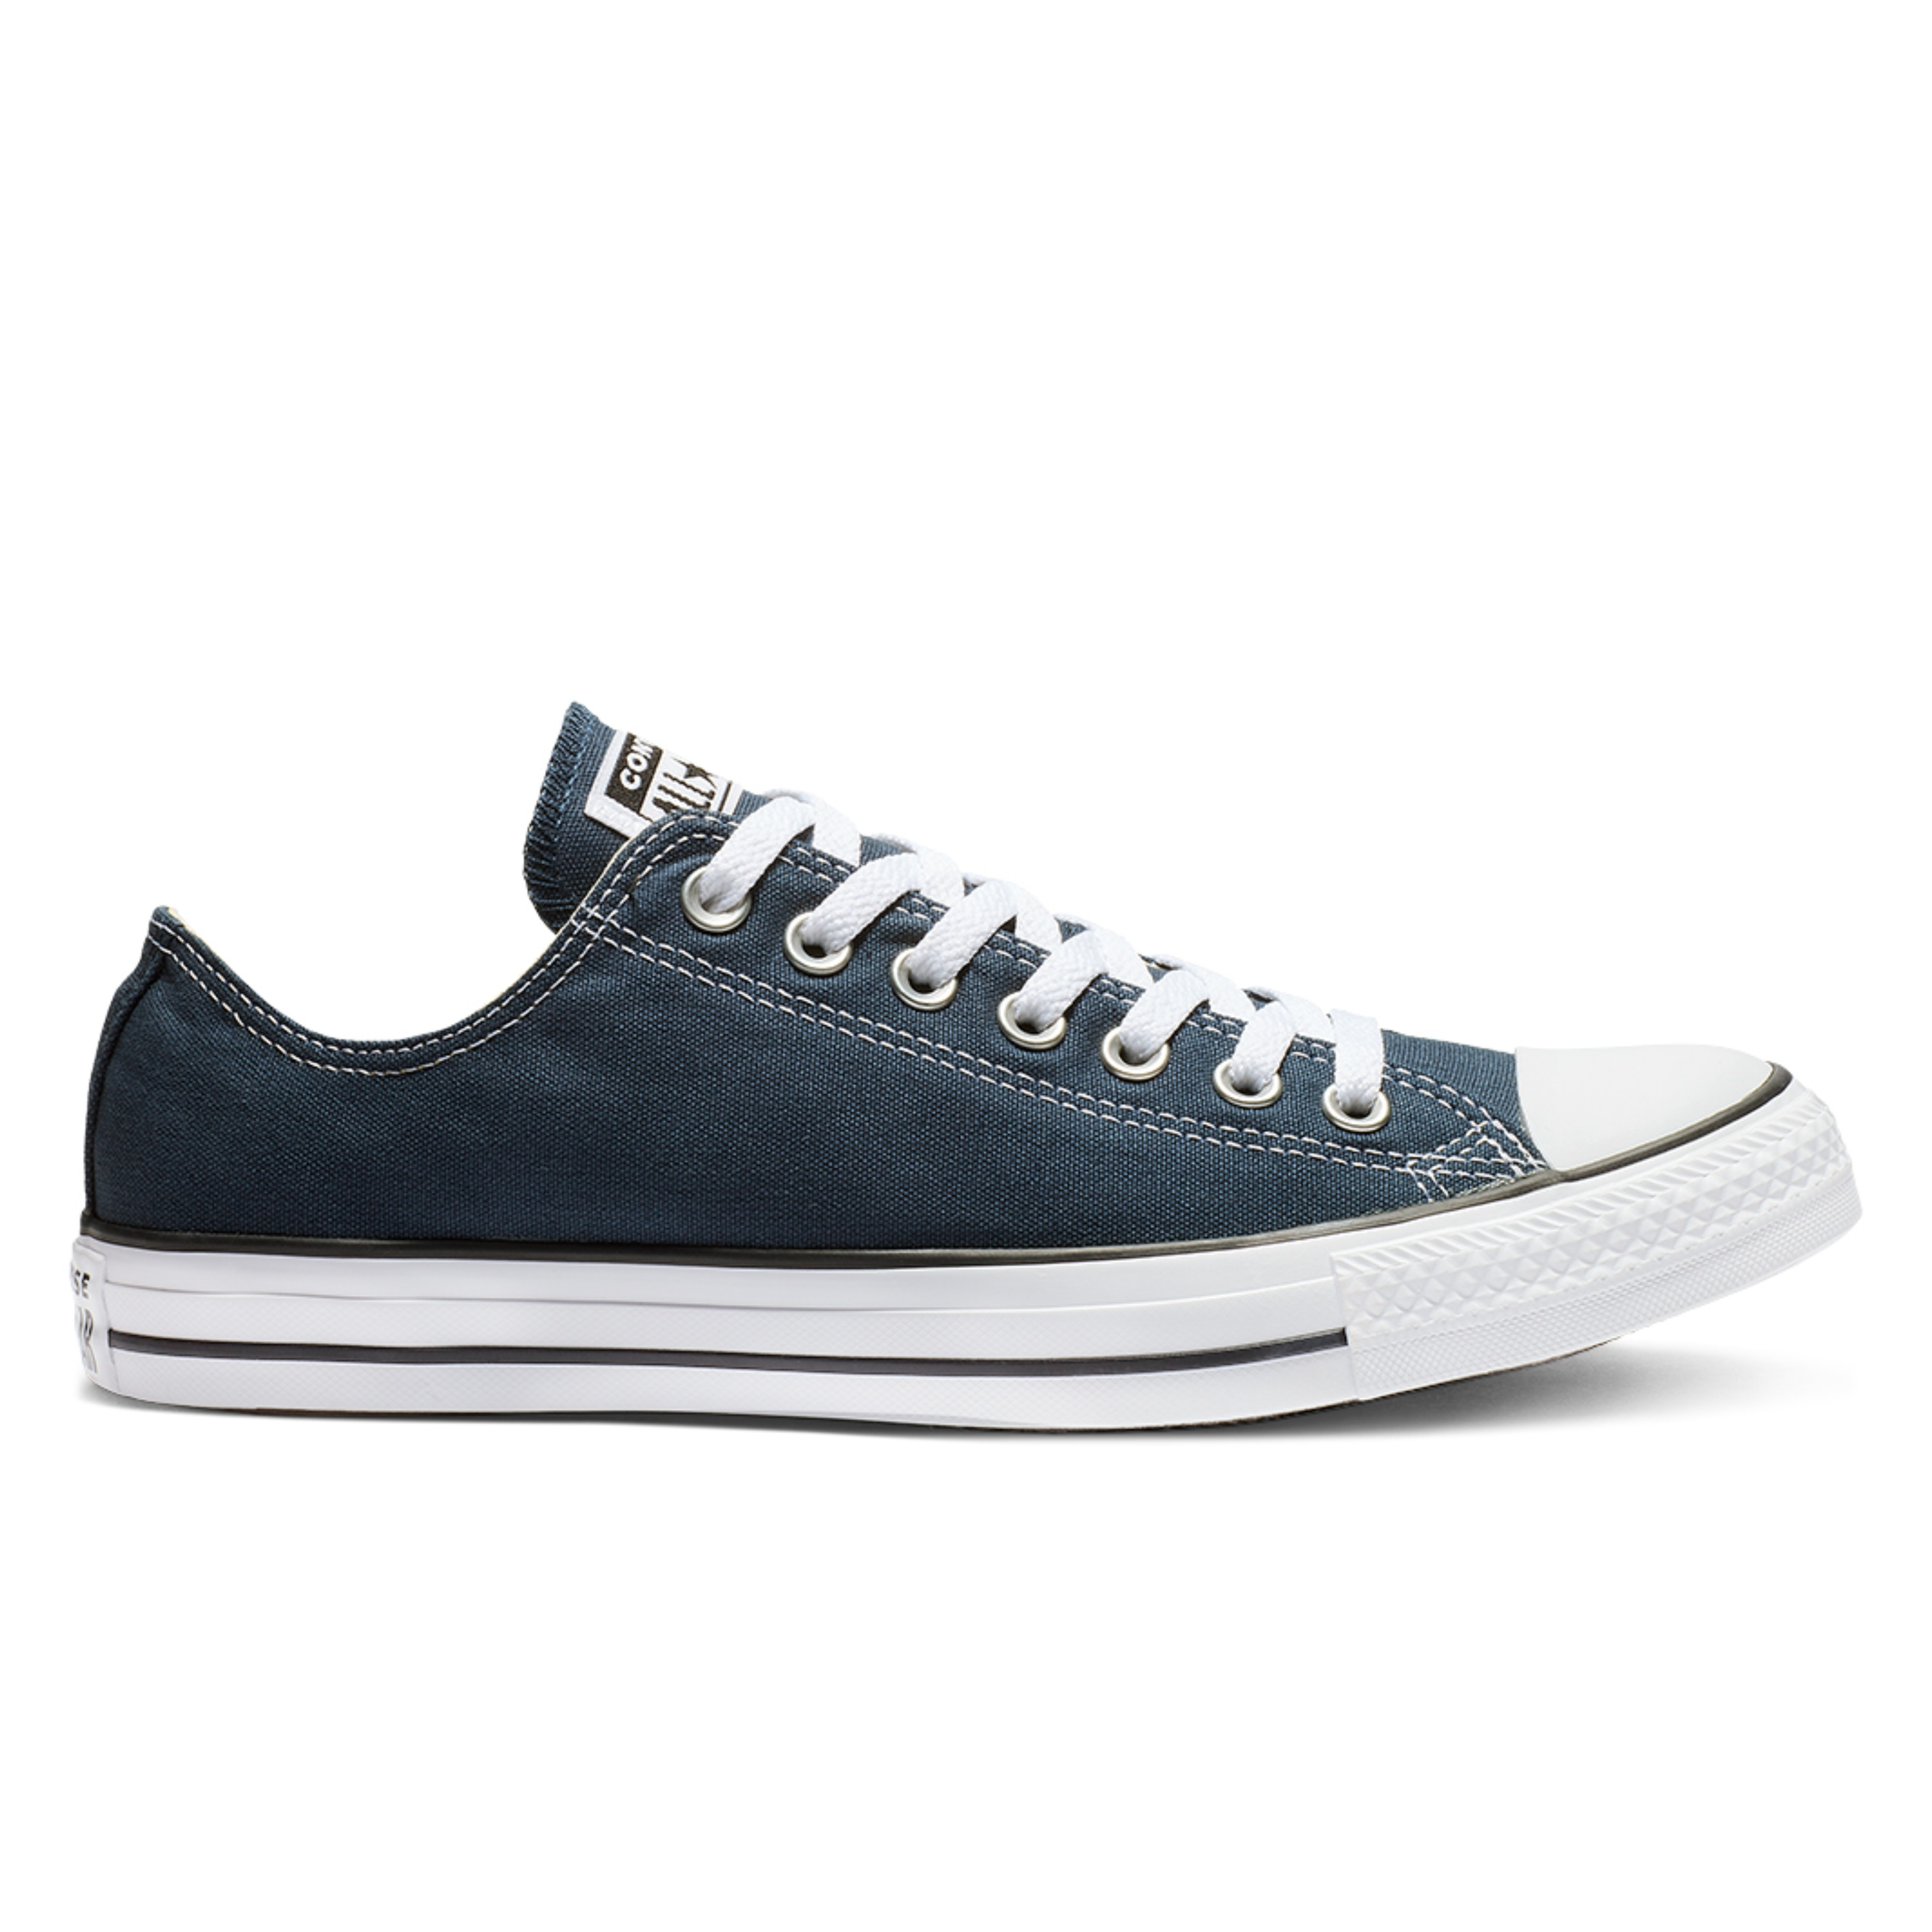 Chuck Taylor All Star Classic Low Top 7 M9697C.410